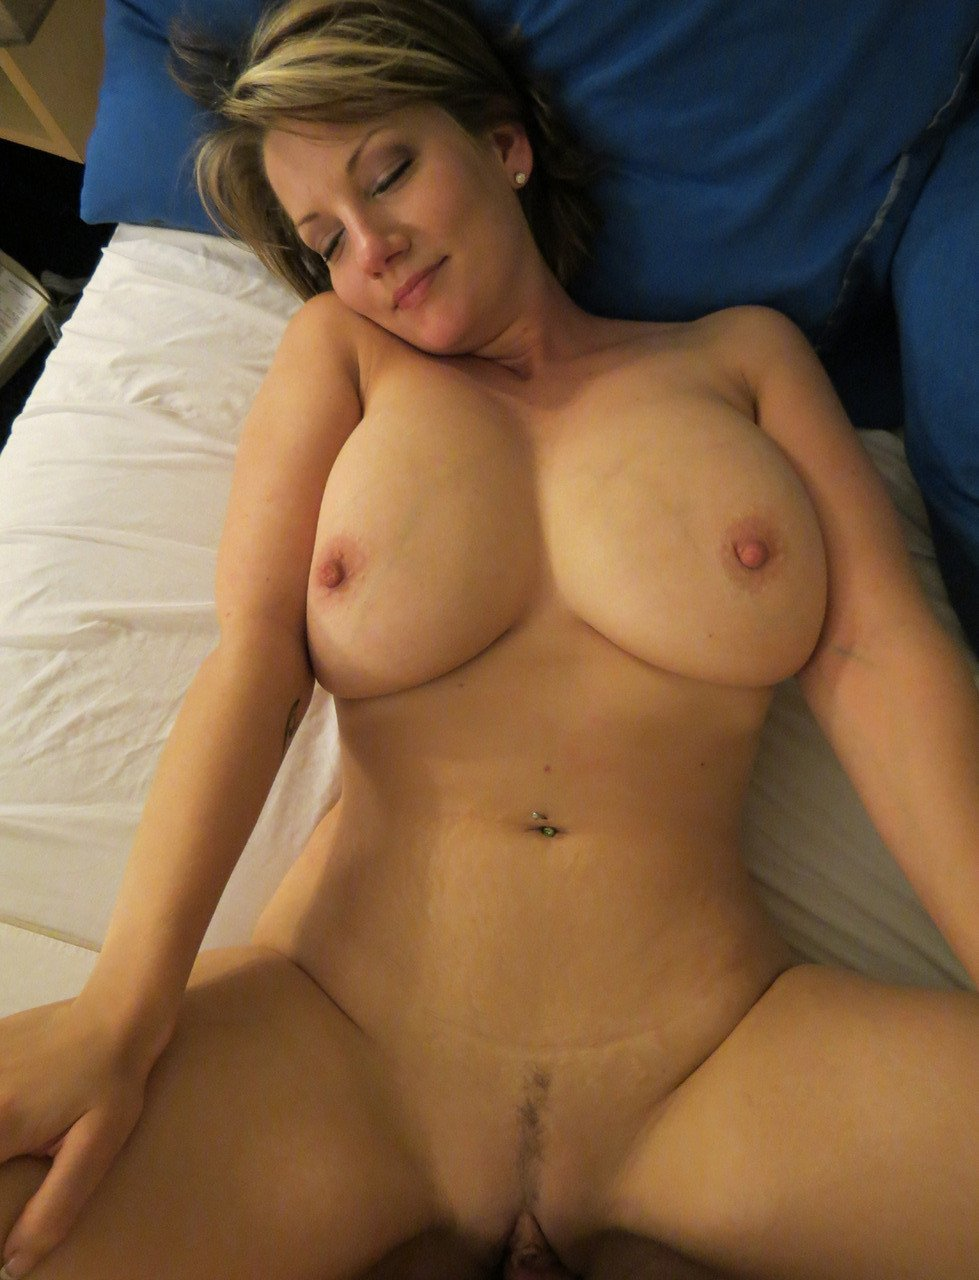 Réel Sex Milf Tumblr